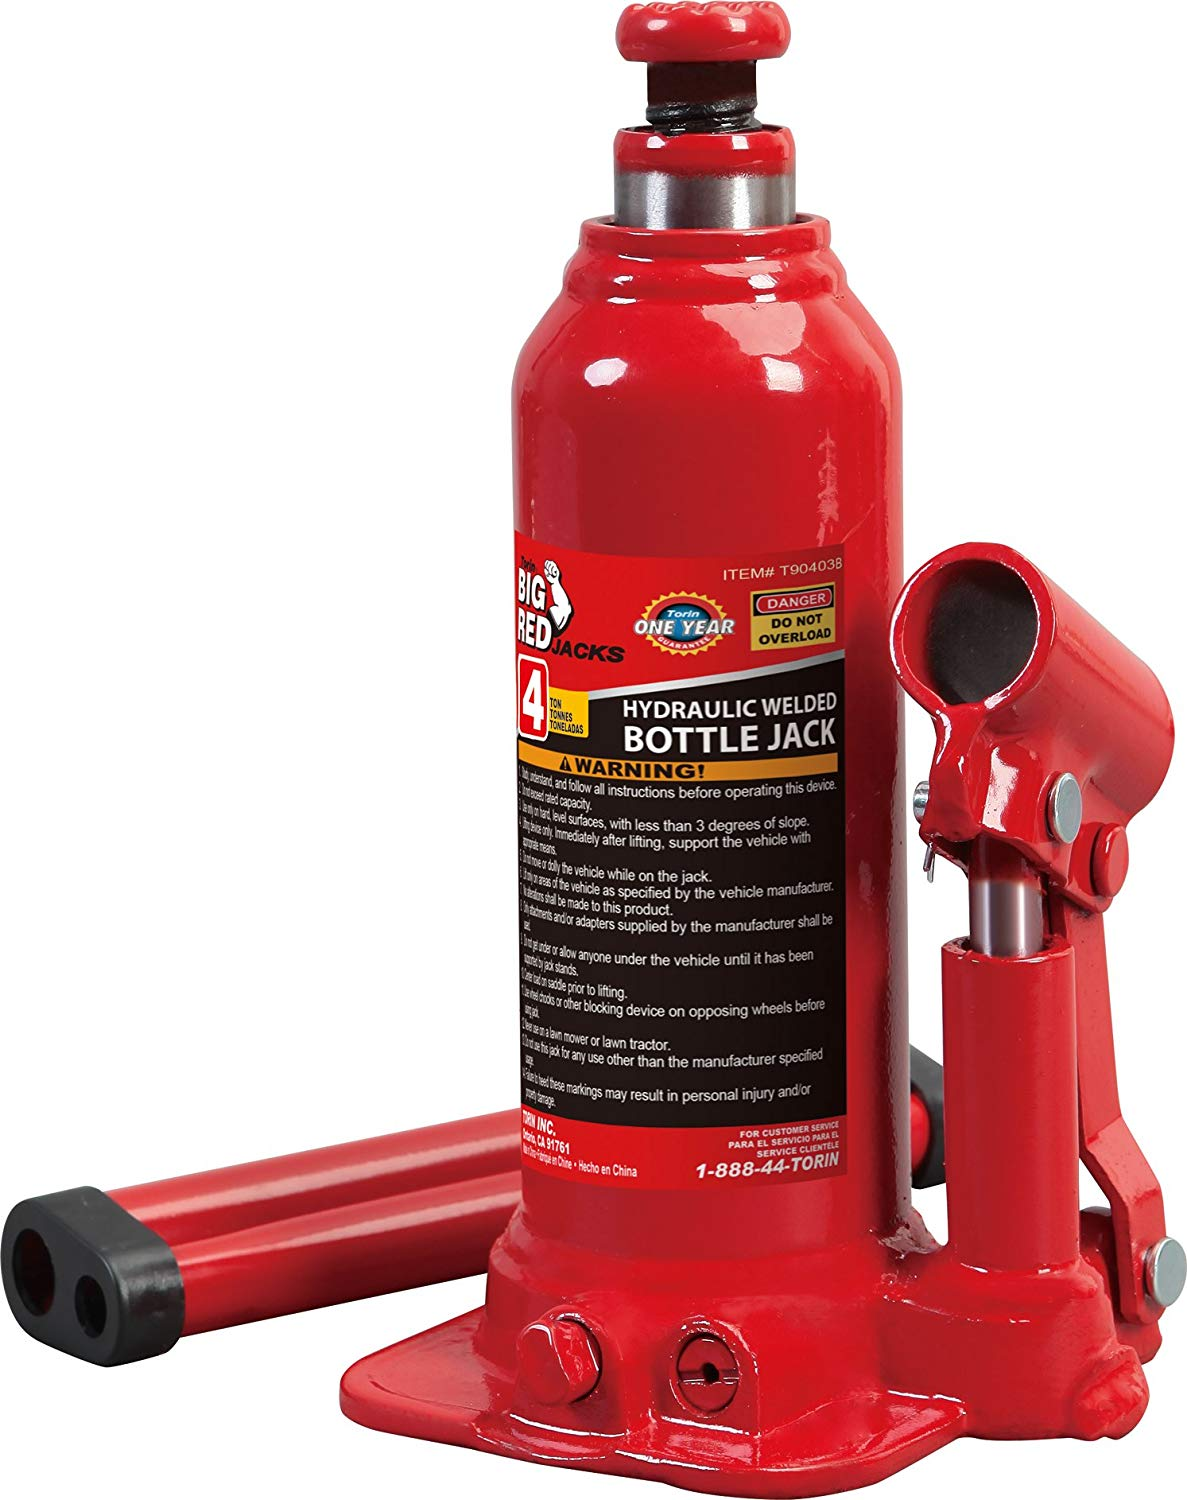 The Torin T90403 Hydraulic Bottle Jack